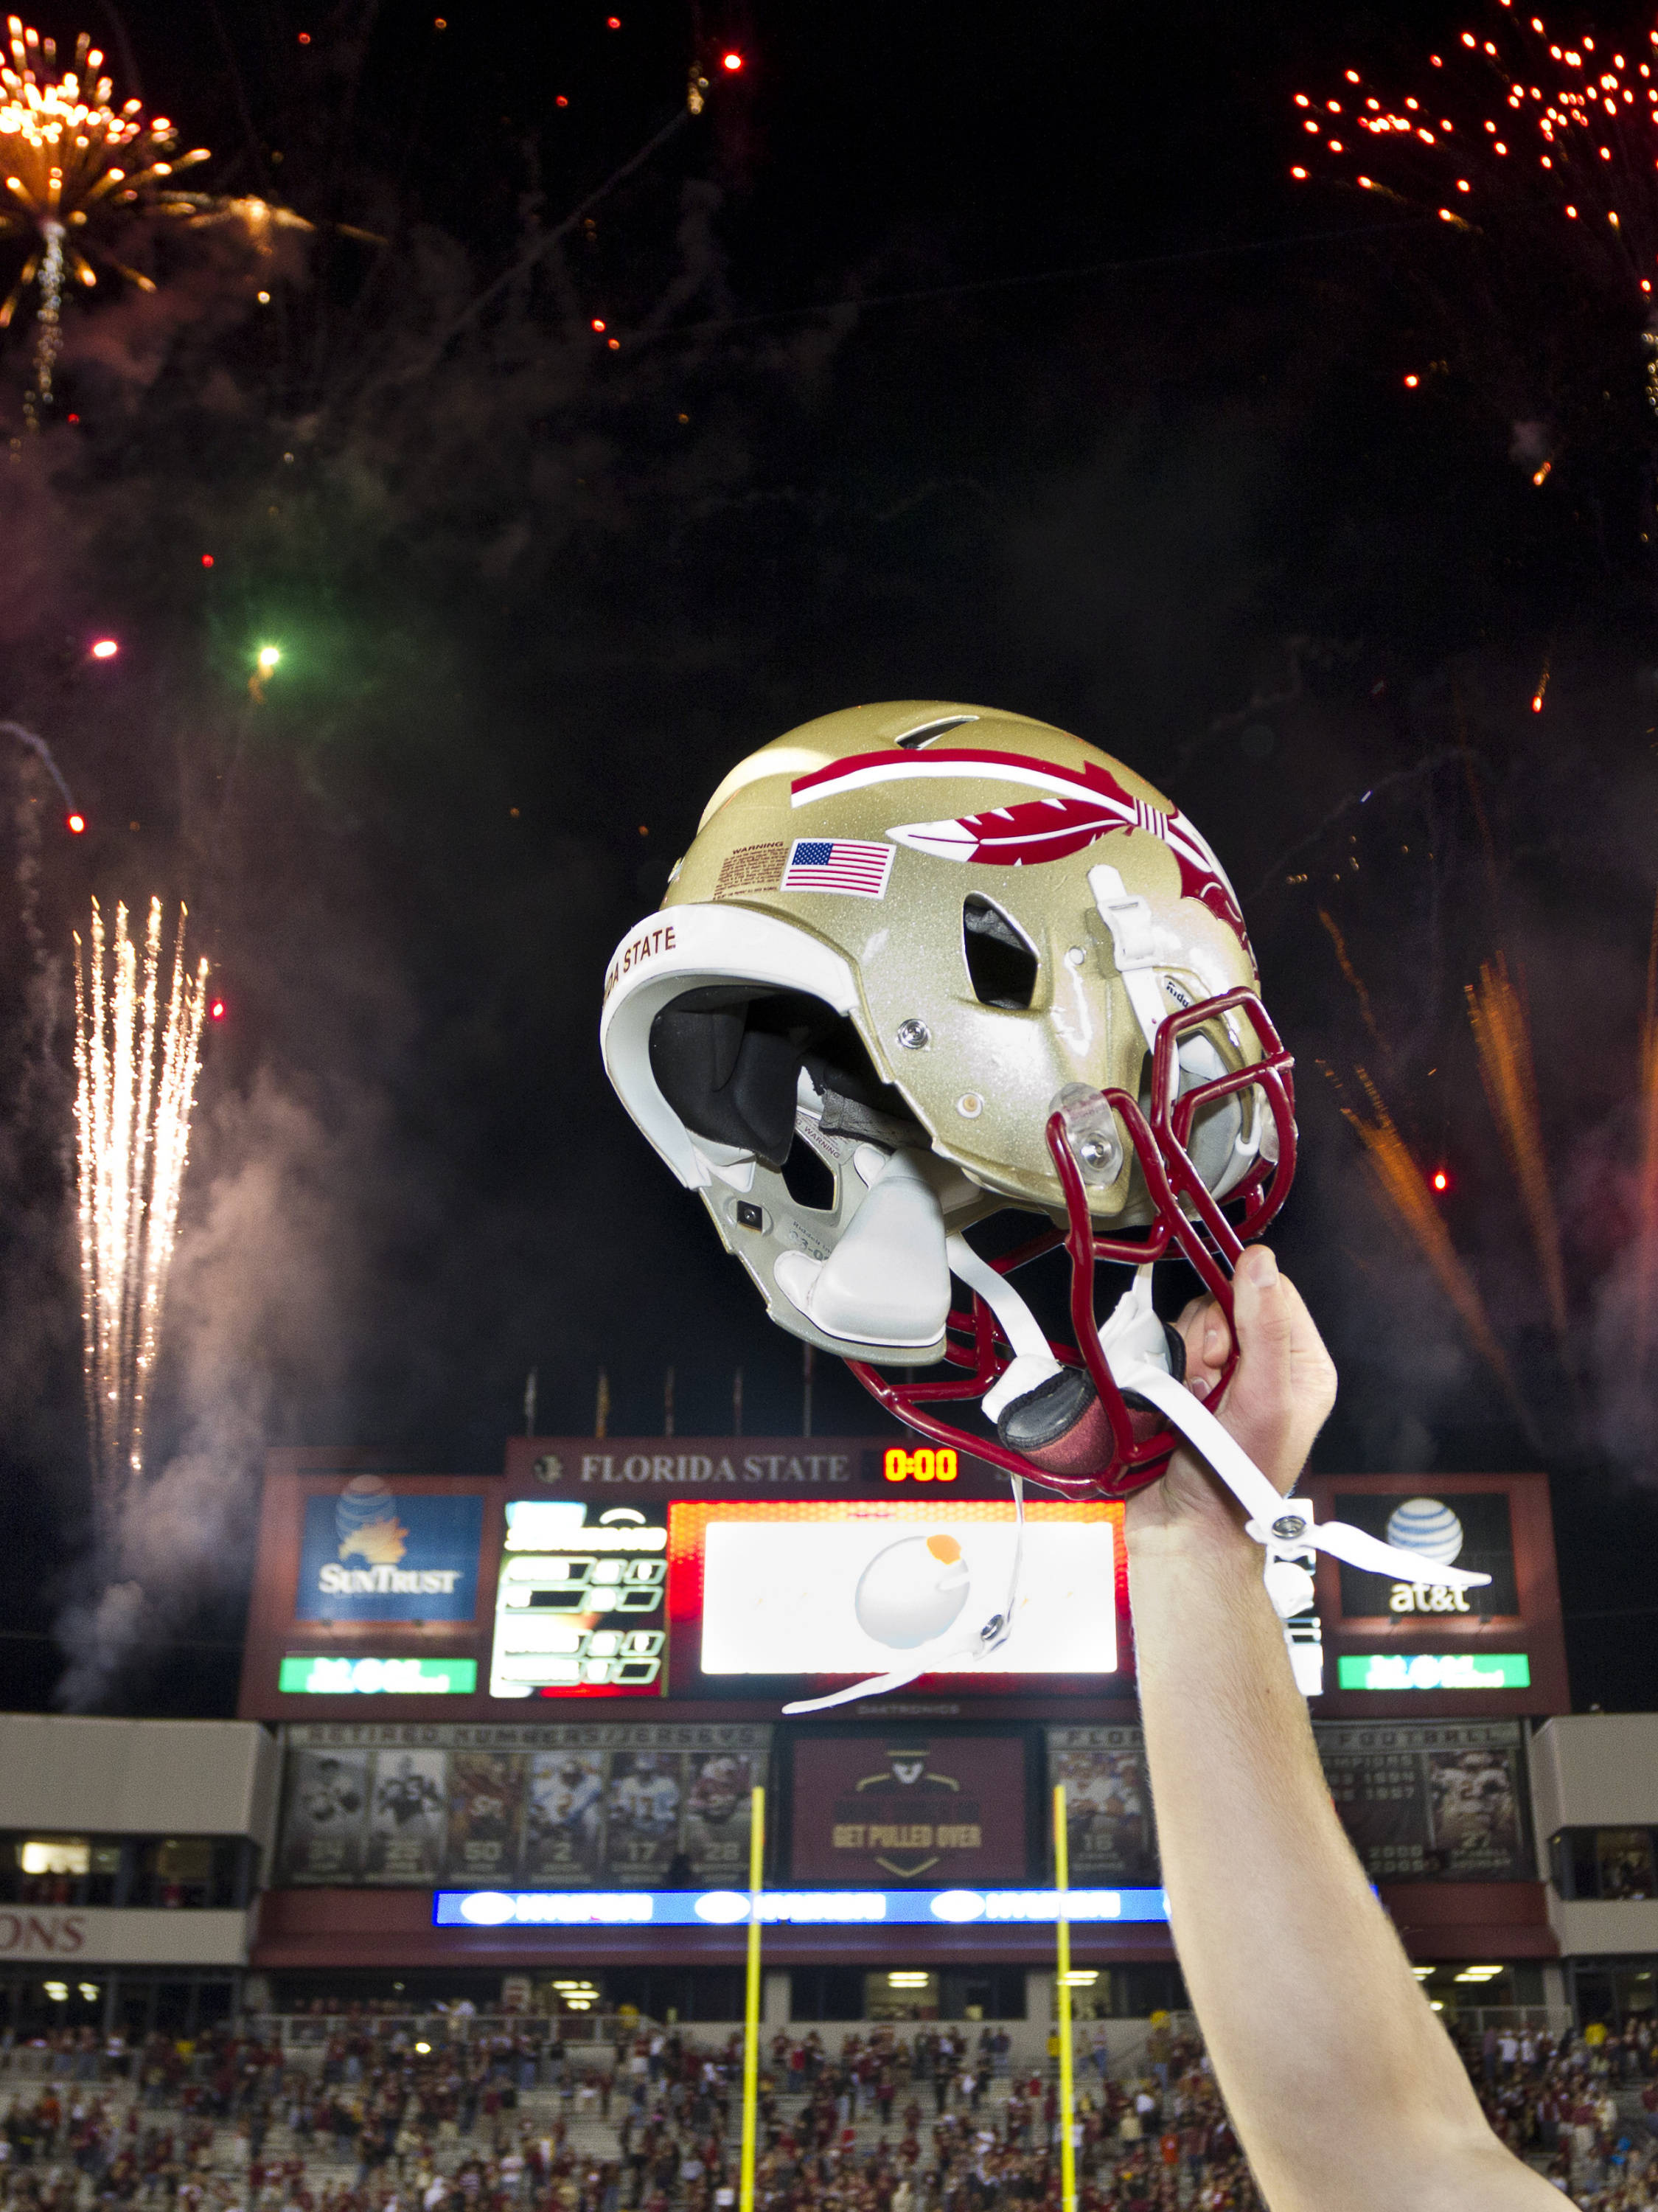 FSU players celebrate after the football game against Miami on November 12, 2011. (photo-illustration)